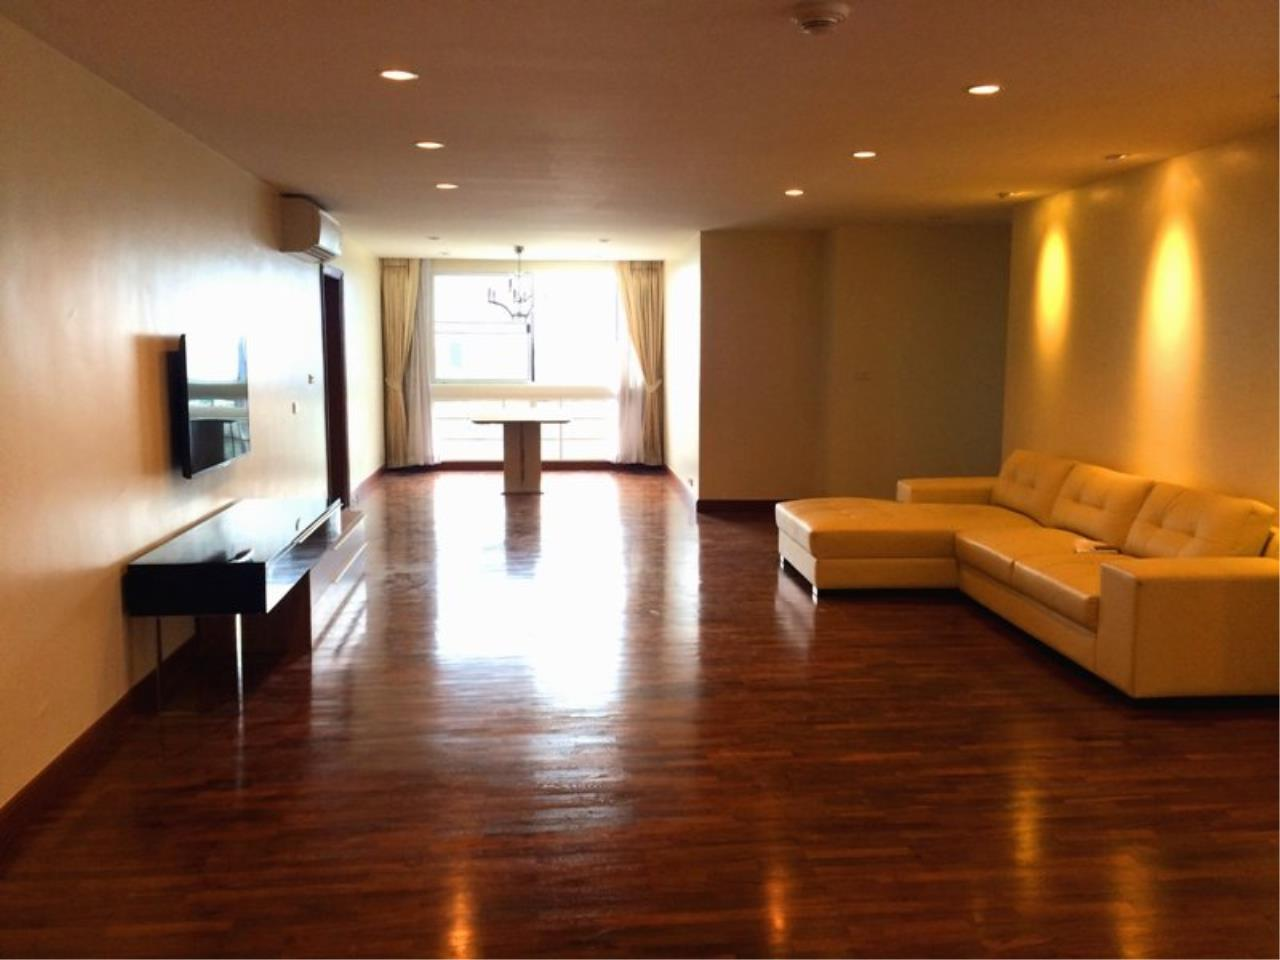 Piri Property Agency's Spacious 3 Bedrooms in the President Park Condominium for rent on high floor 1